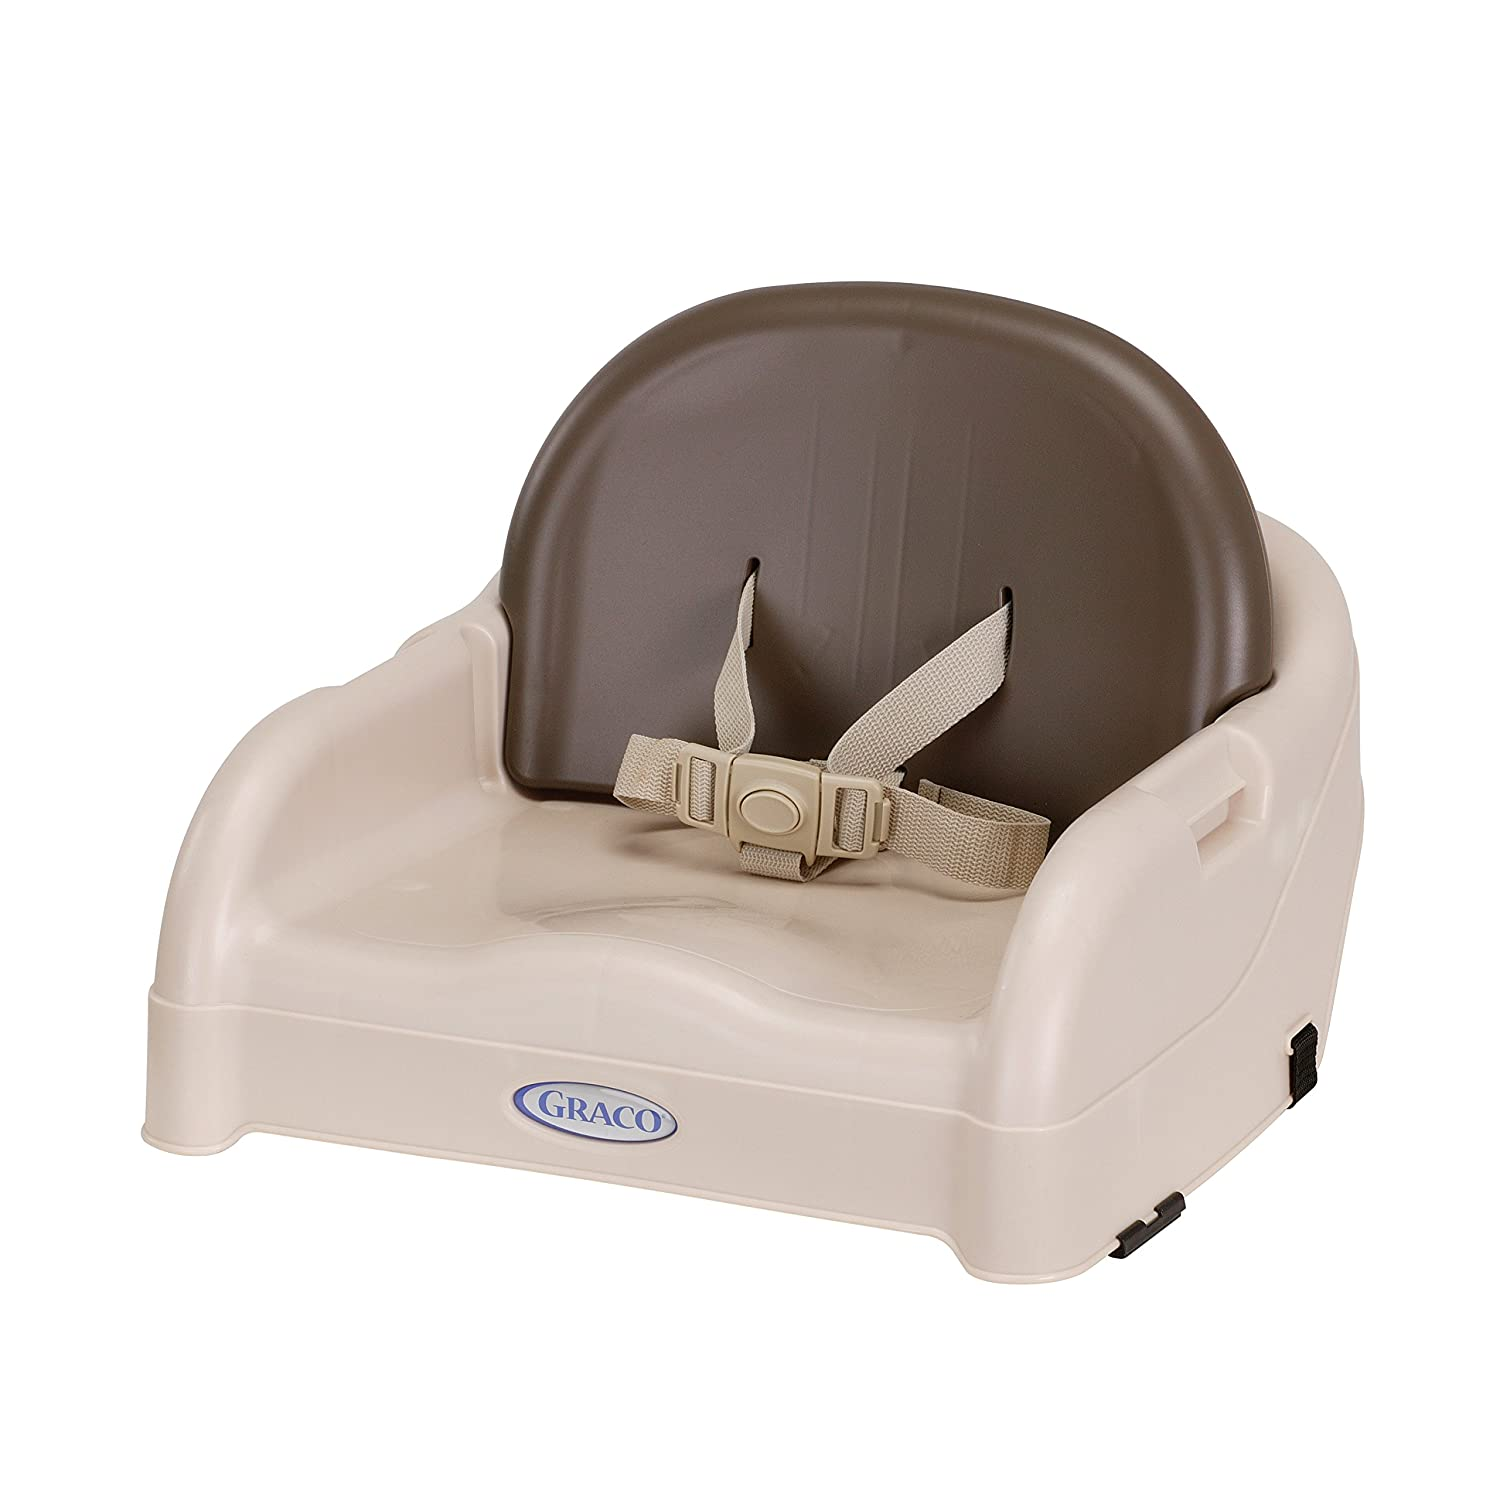 Graco Toddler Booster Seat, White 1967366